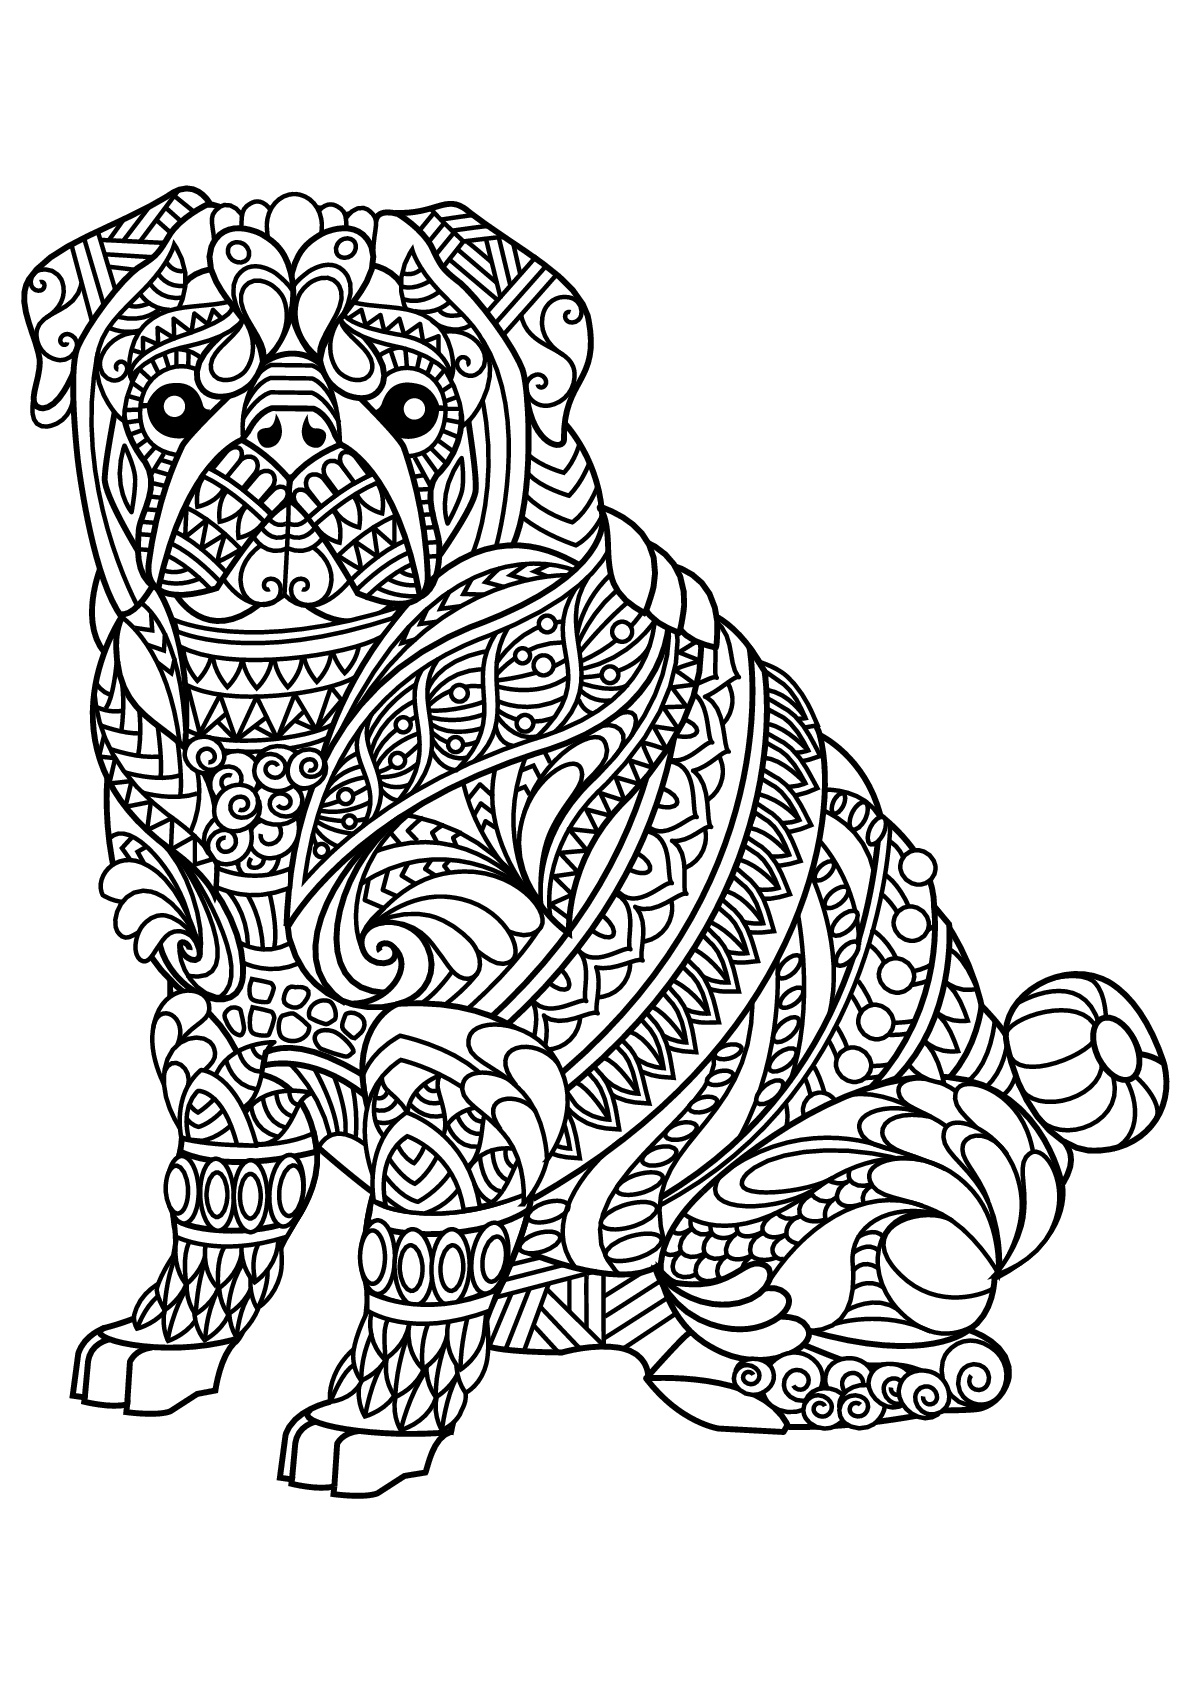 Free book dog bulldog - Dogs Adult Coloring Pages